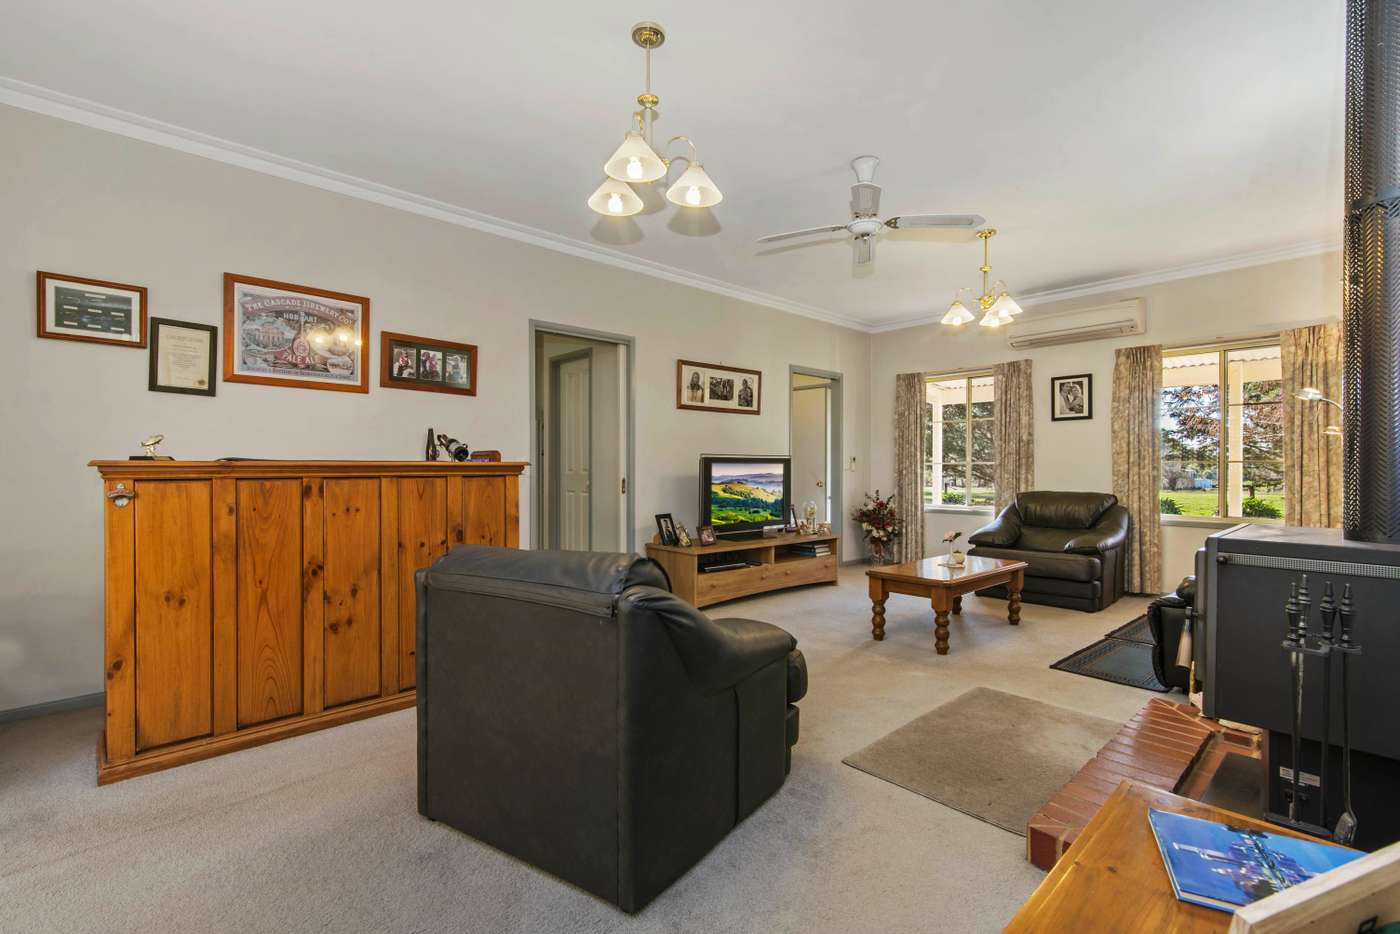 Sixth view of Homely house listing, 64 Pearces Road, Mandurang VIC 3551